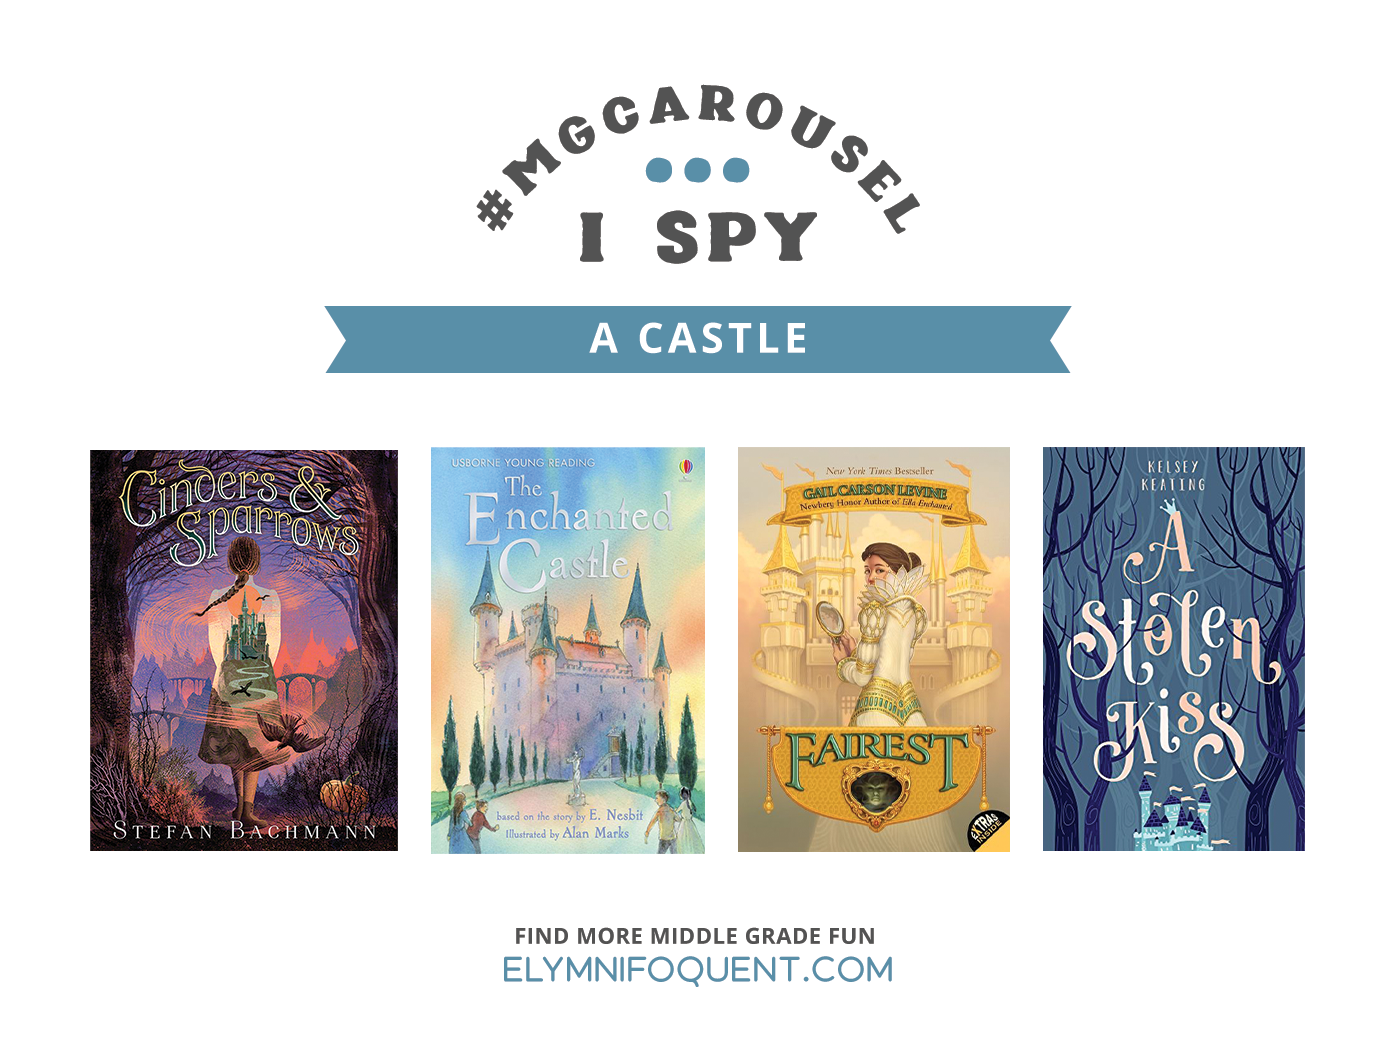 I SPY: A Castle featuring CINDERS & SPARROWS by Stefan Bachmann; THE ENCHANTED CASTLE by E. Nesbit; FAIREST by Gail Carson Levine; and A STOLEN KISS by Kelsey Keating